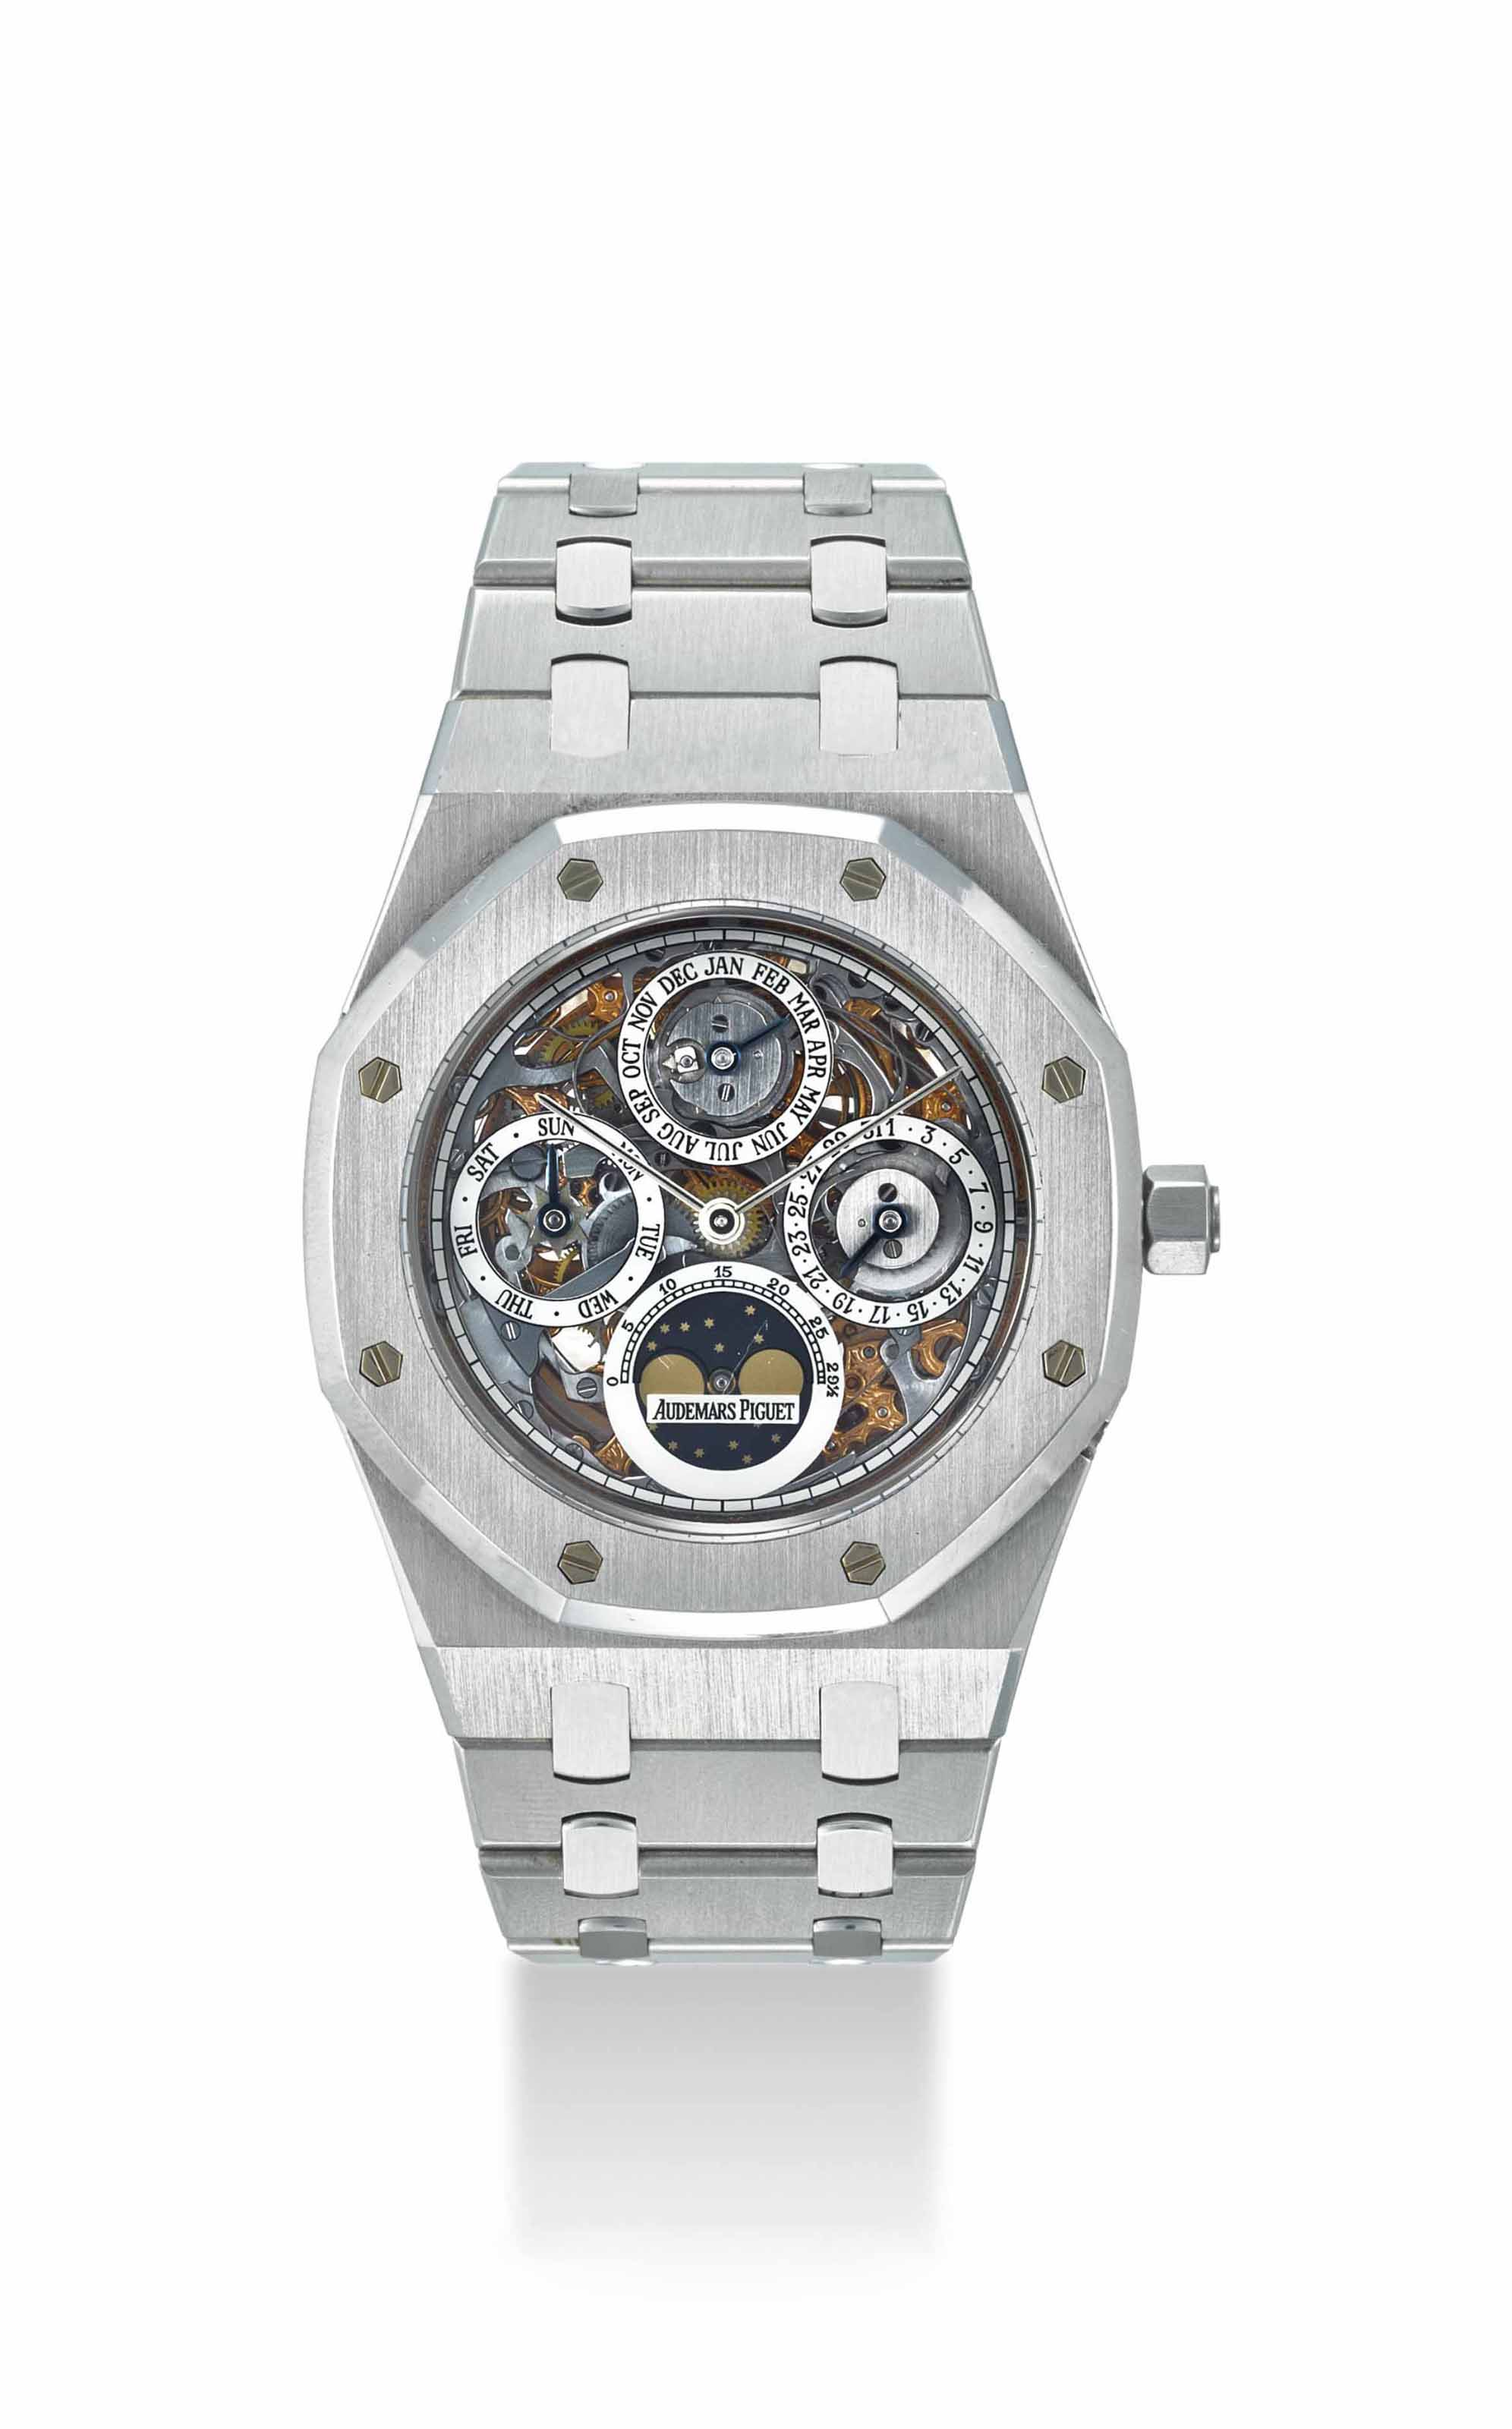 AUDEMARS PIGUET. A VERY FINE AND RARE STAINLESS STEEL SKELETONIZED AUTOMATIC PERPETUAL CALENDAR WRISTWATCH WITH MOON PHASES AND BRACELET